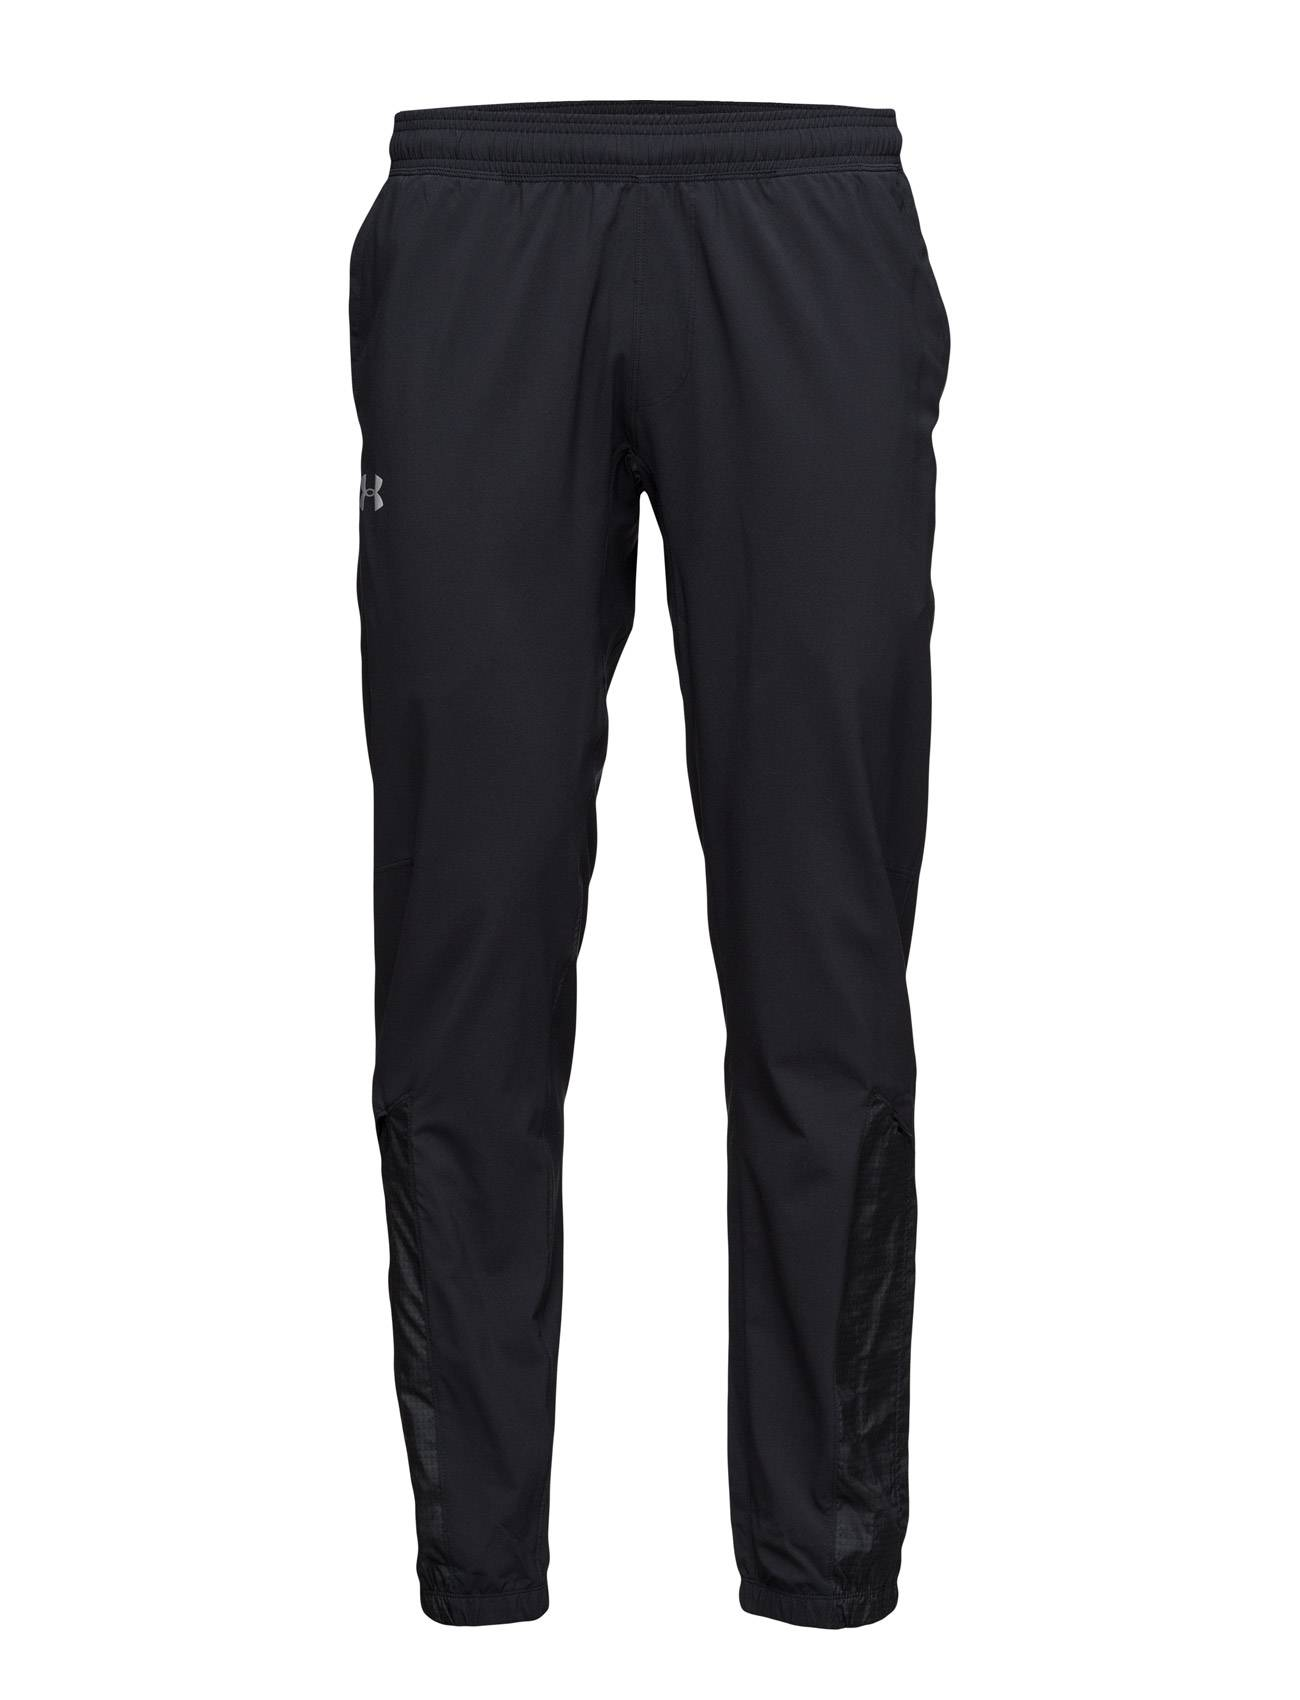 Under Armour Storm1 Printed Pant